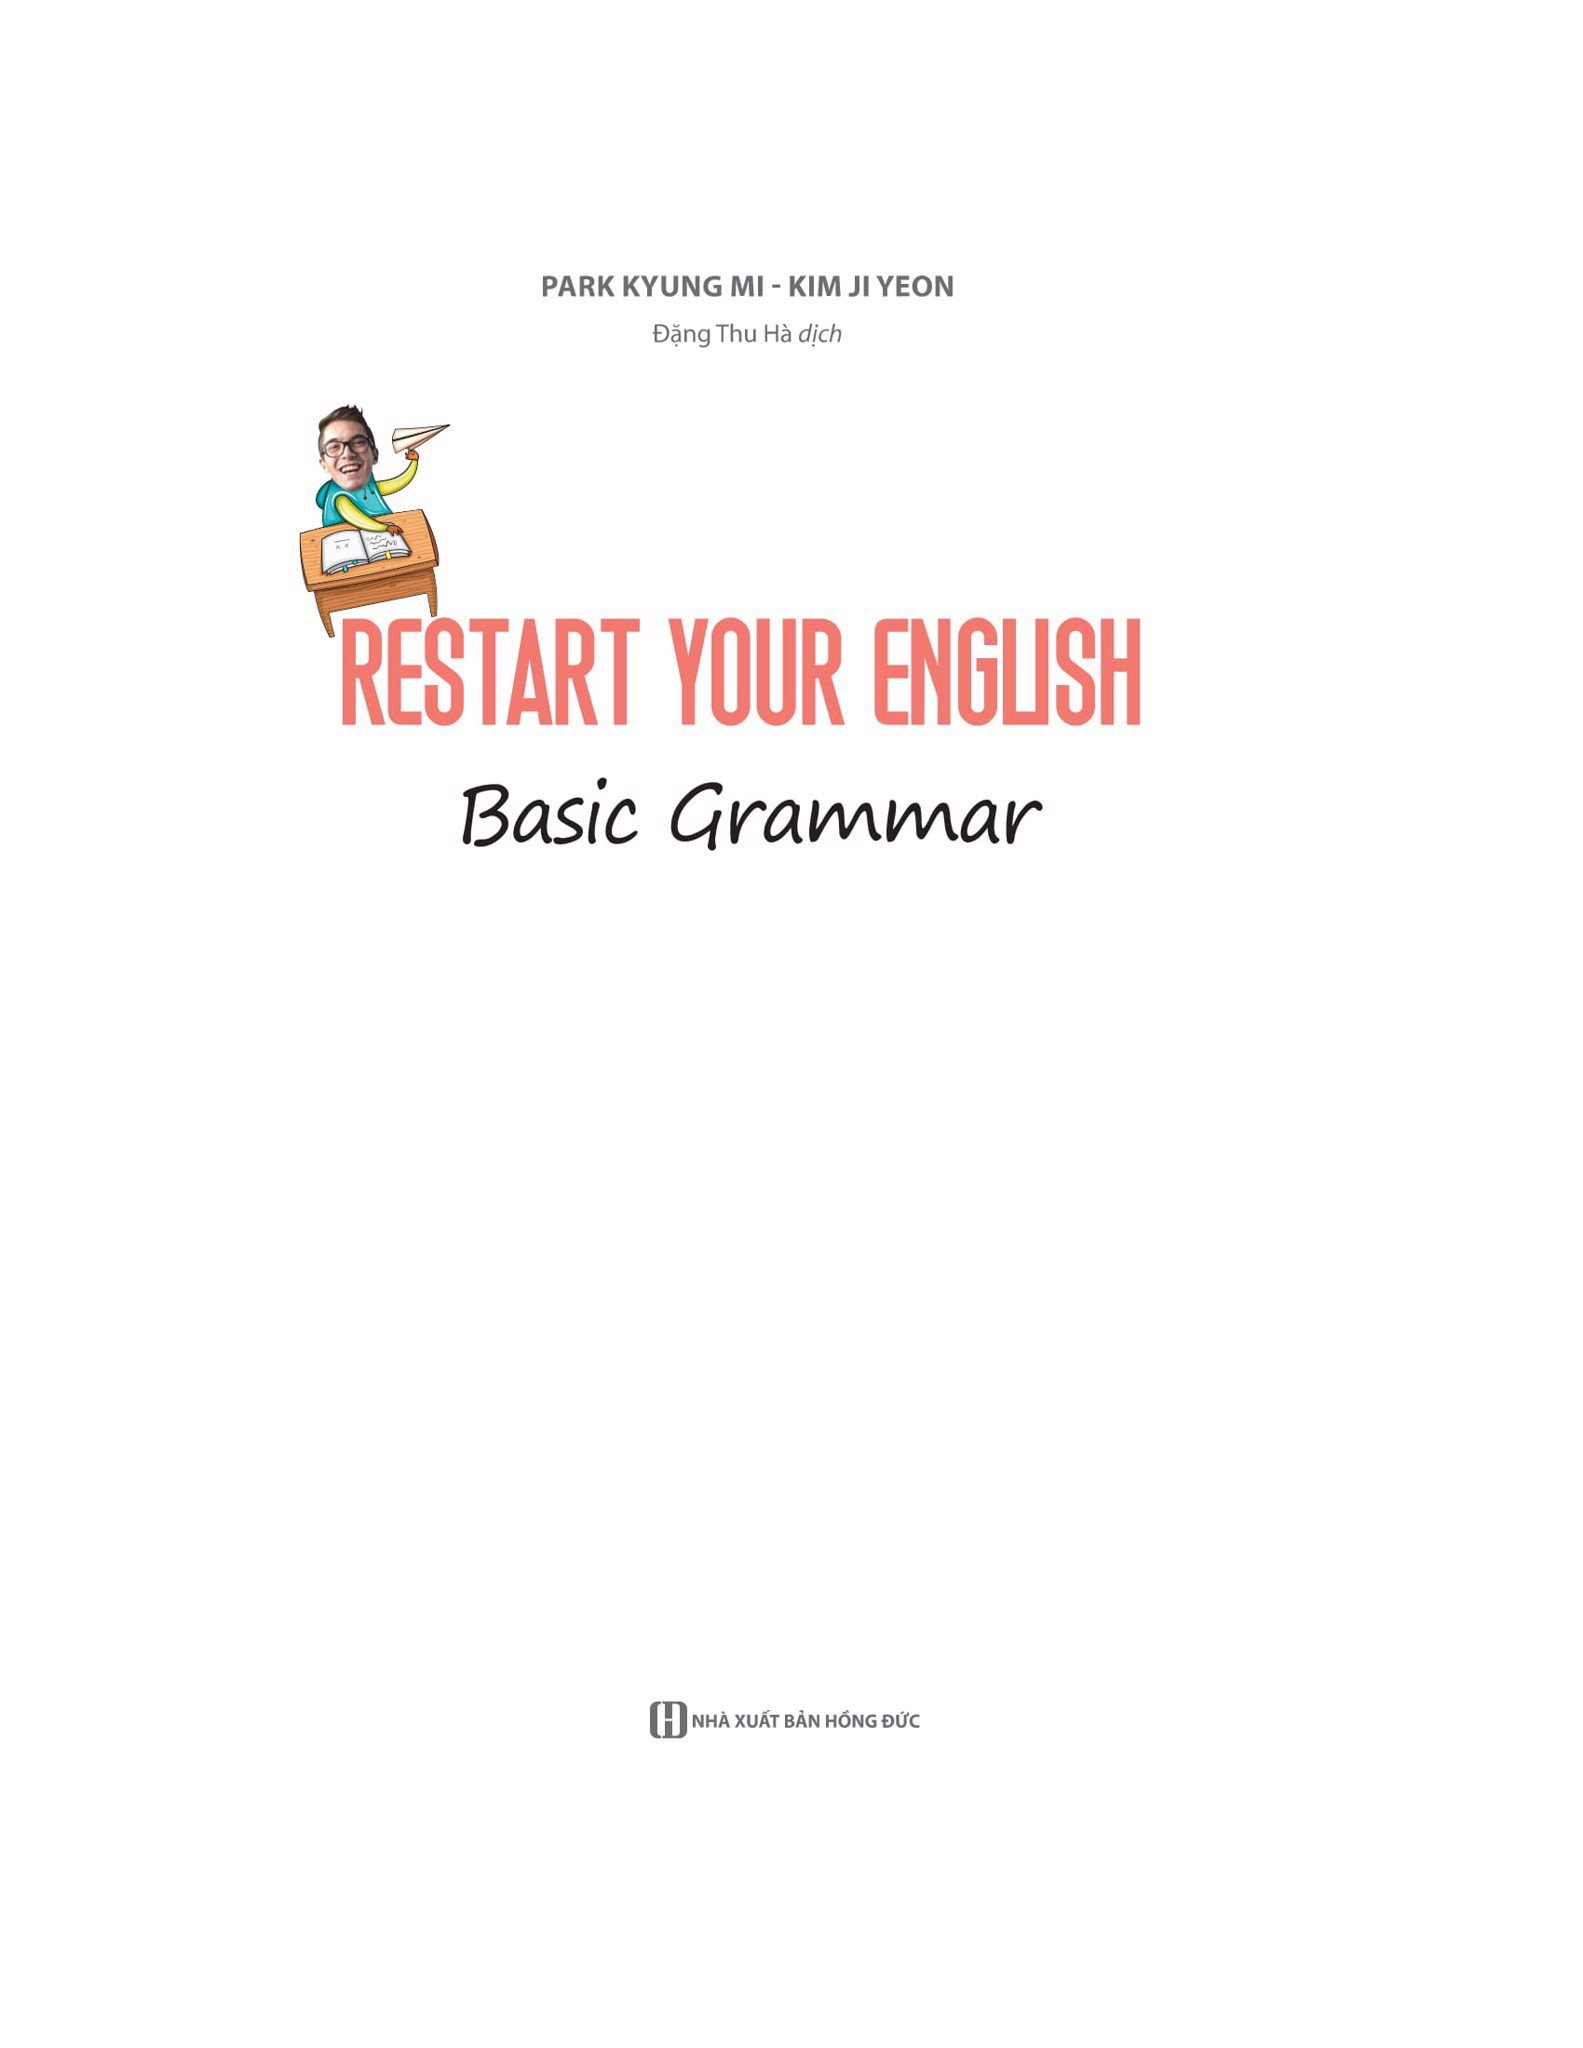 Restart your English - Basic Grammar (Bìa xanh dương)